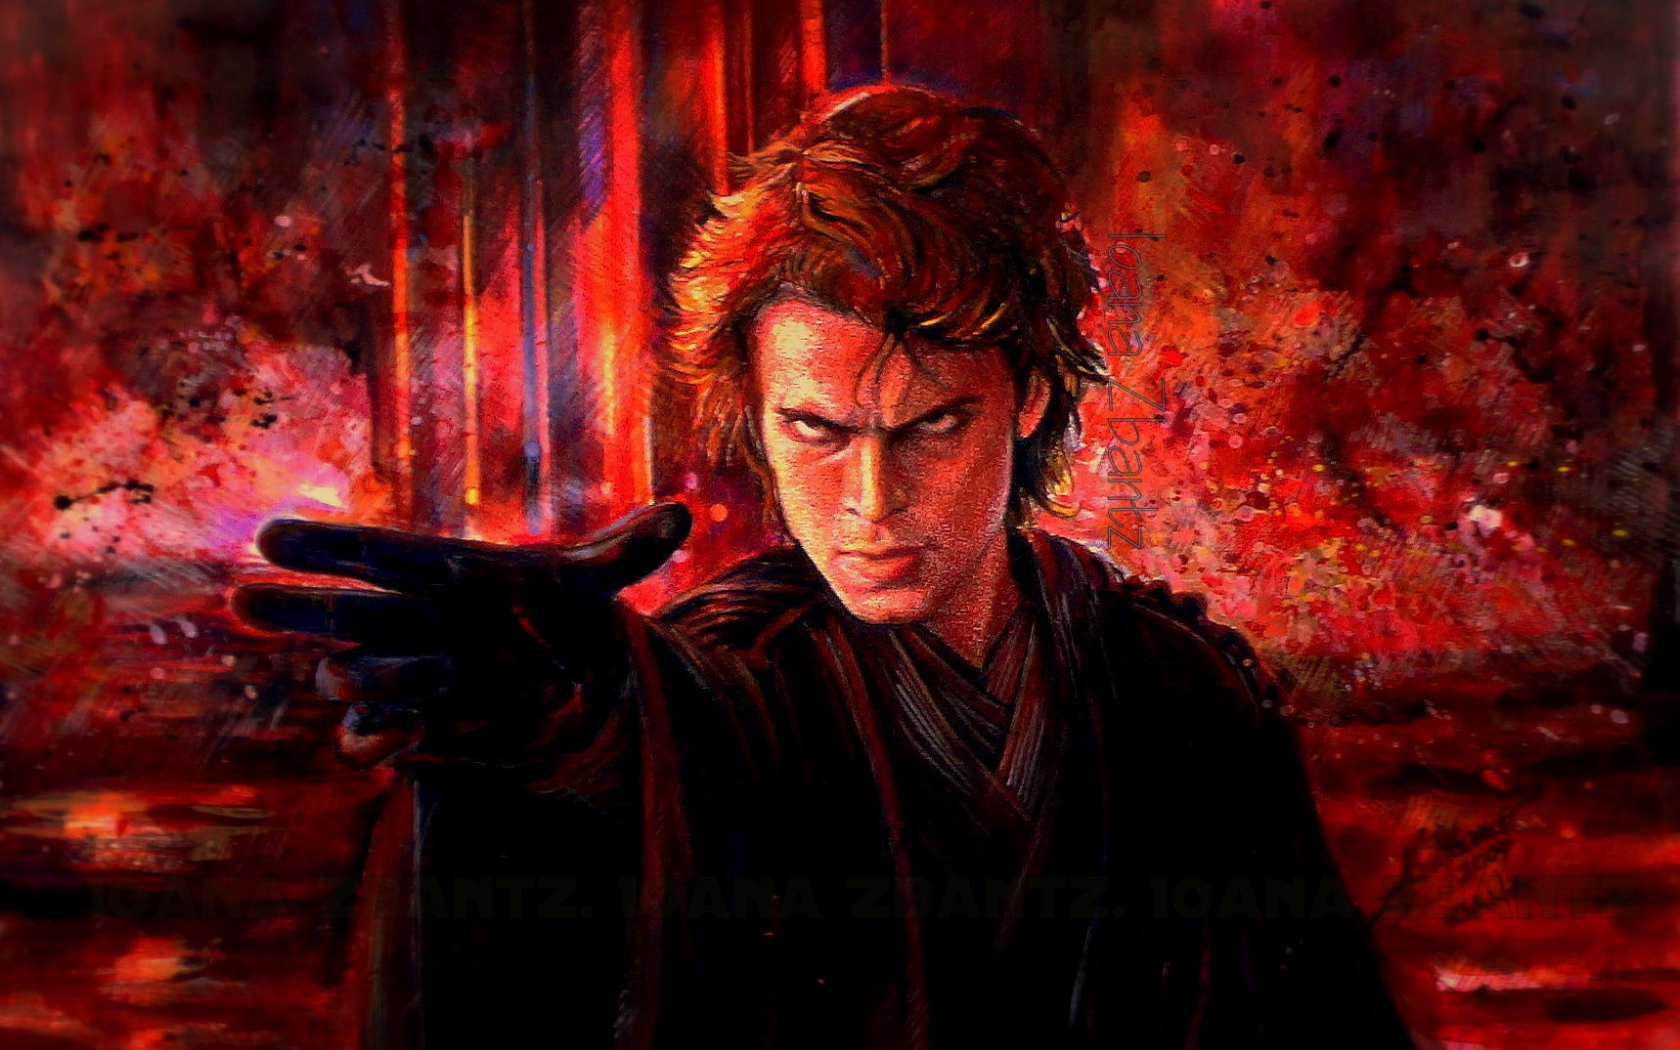 Free Download Dark Anakin On Mustafar Star Wars Revenge Of The Sith Fan Art 1718x1177 For Your Desktop Mobile Tablet Explore 48 Mustafar Wallpaper Mustafar Wallpaper